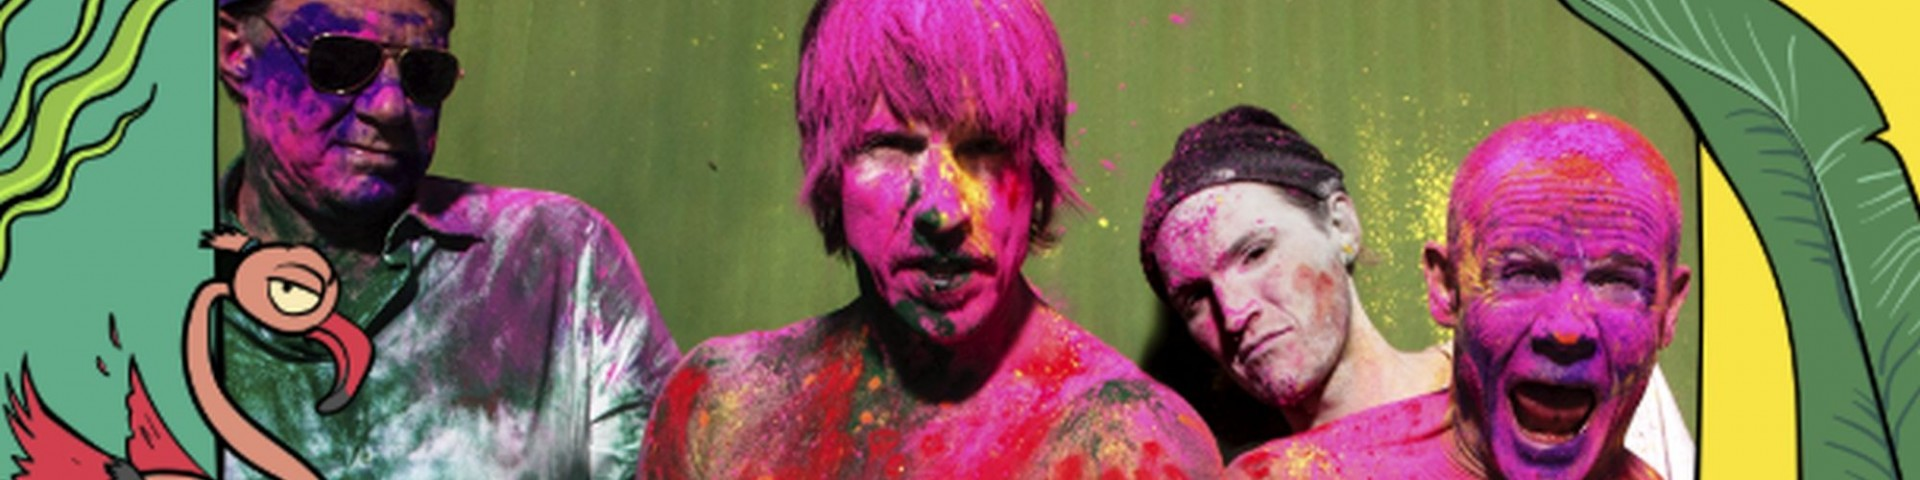 Red Hot Chili Peppers in concerto a Firenze Rocks 2020: come acquistare i biglietti